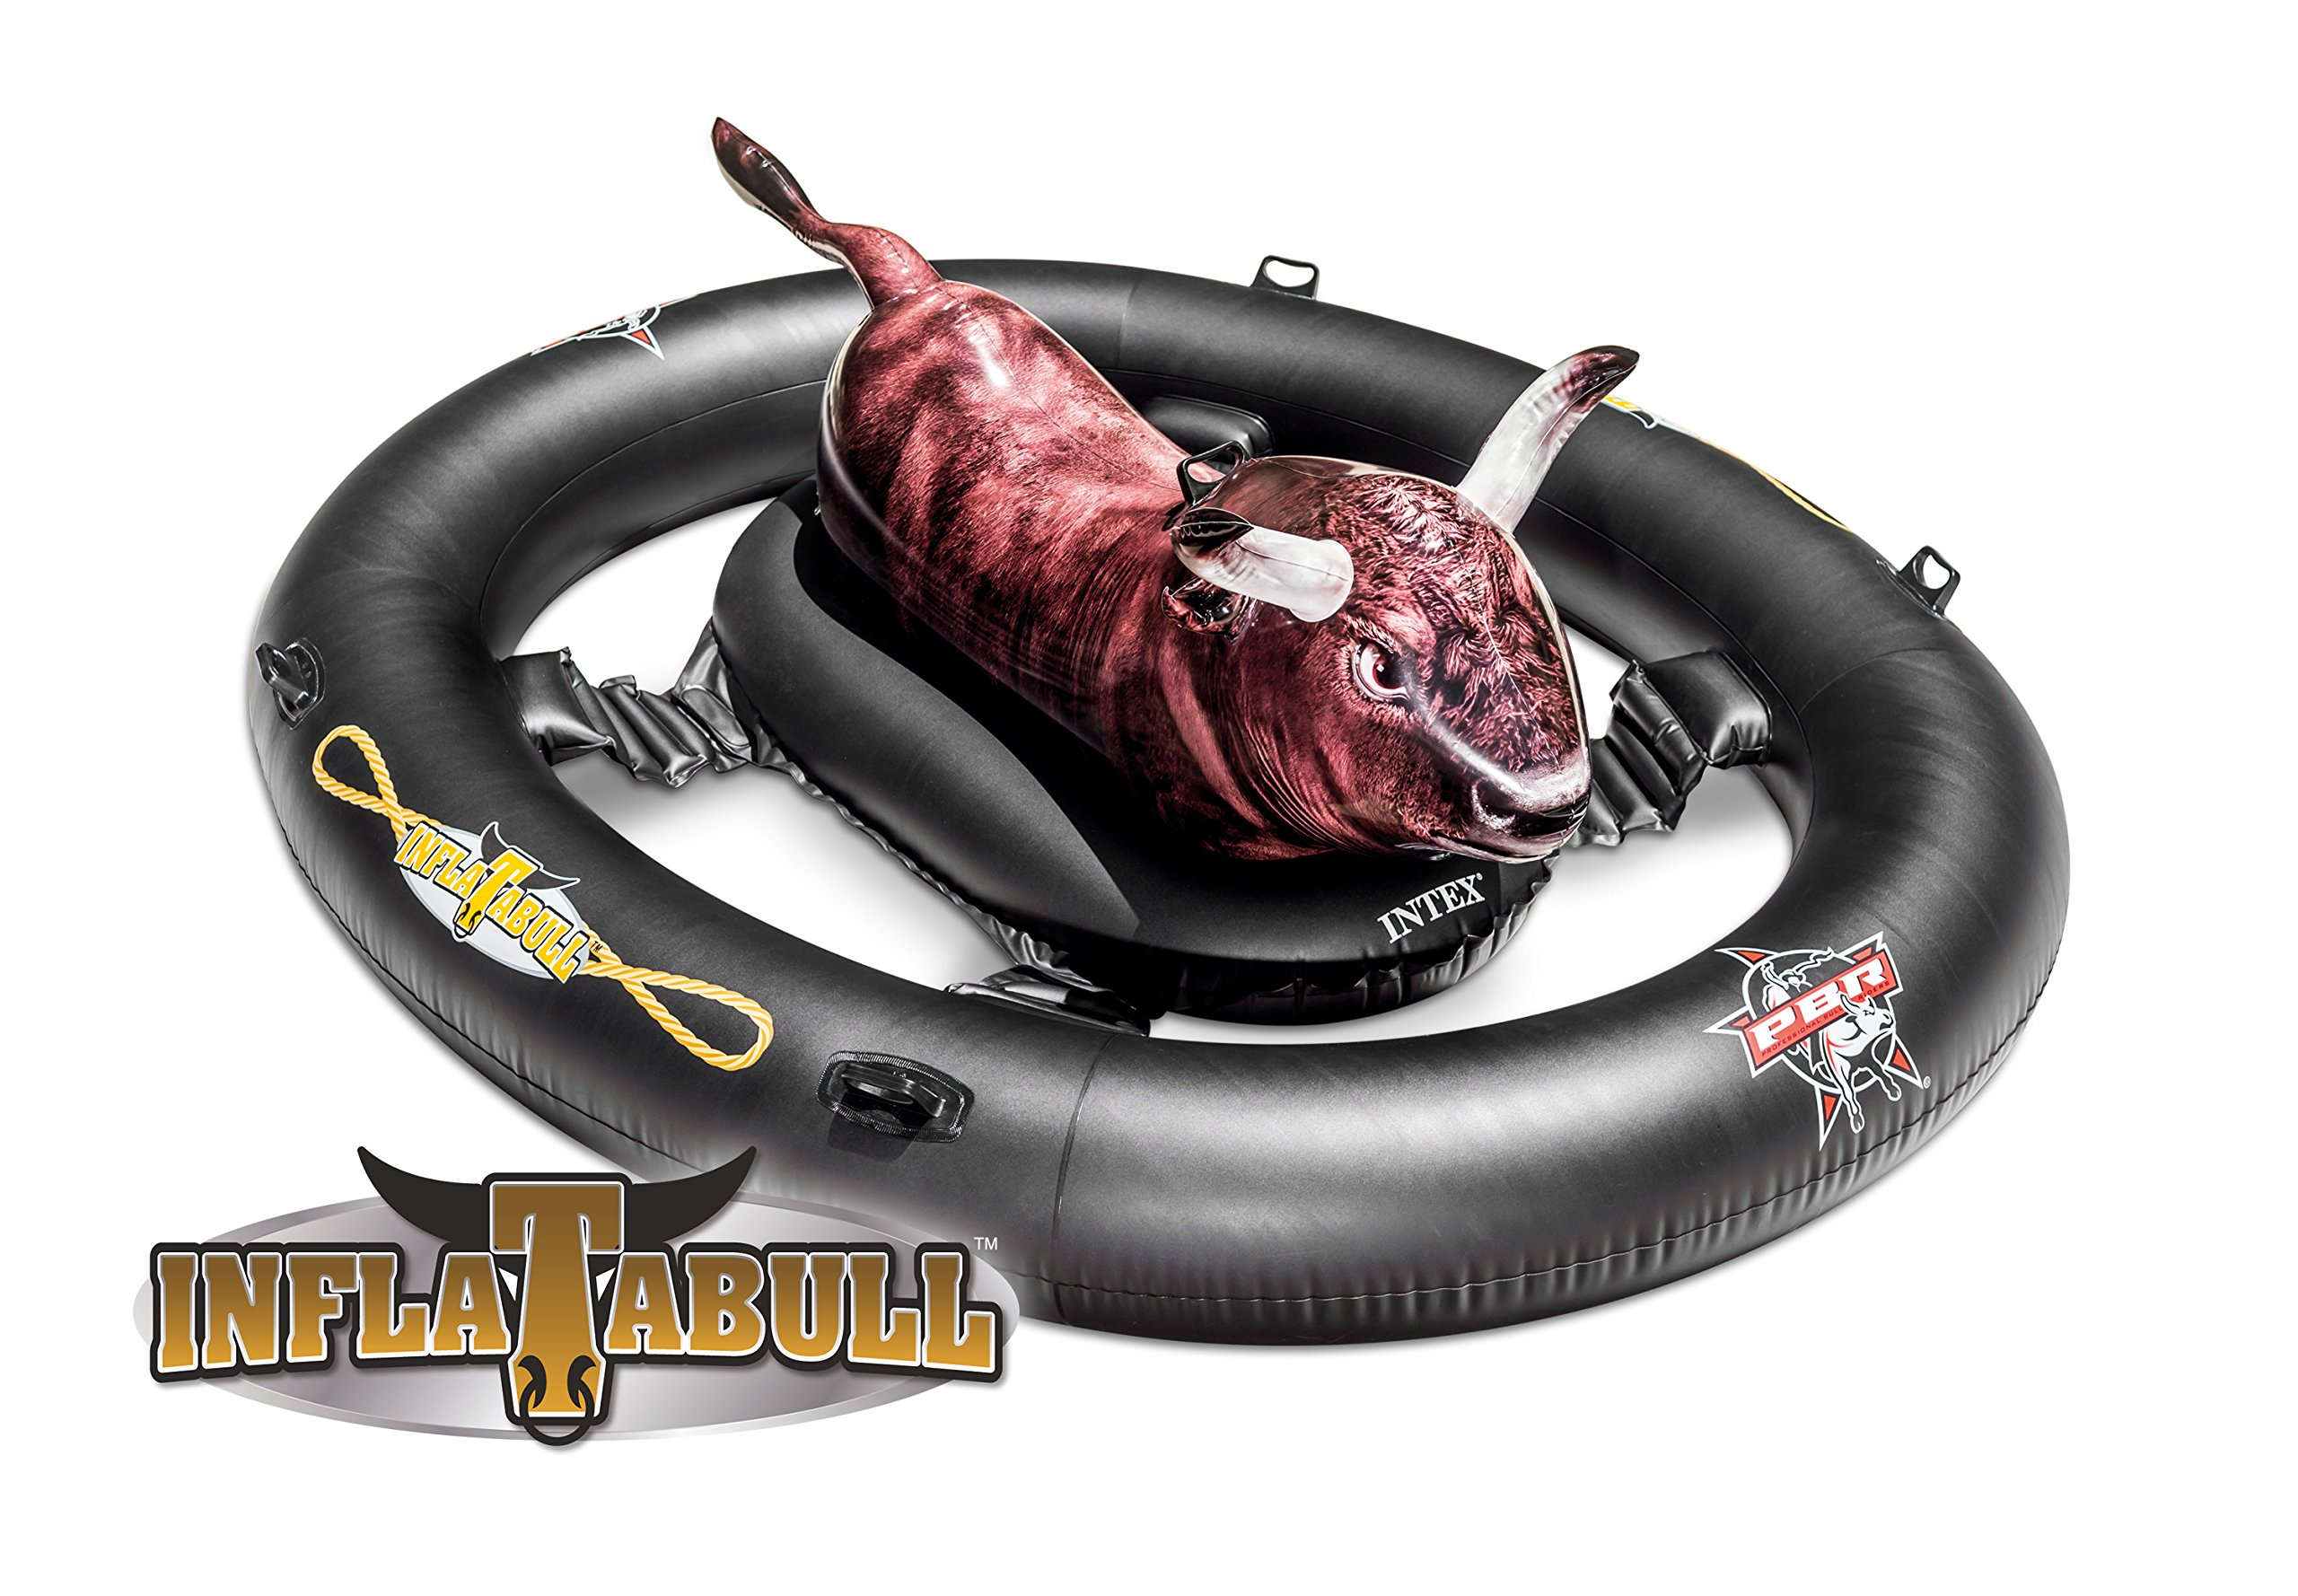 Intex Inflat-A-Bull, Inflatable Ride-On Pool Toy with Realistic Printing, 94'' X 77'' X 32'', for Ages 9+ by Intex